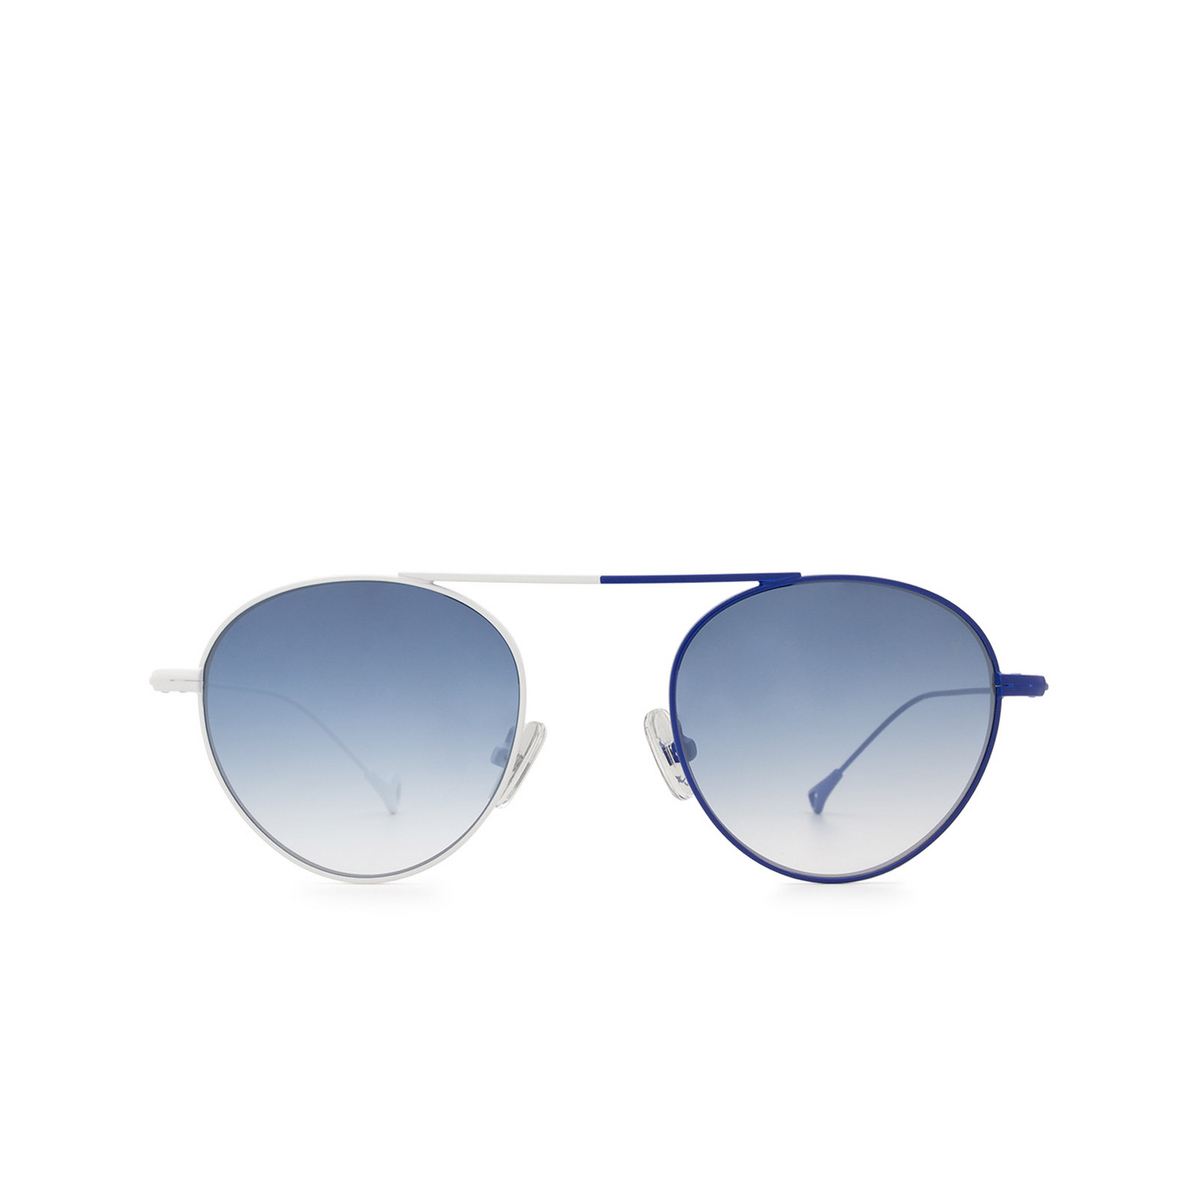 Eyepetizer® Round Sunglasses: En Bossa color White & Blue C.19-12F - front view.